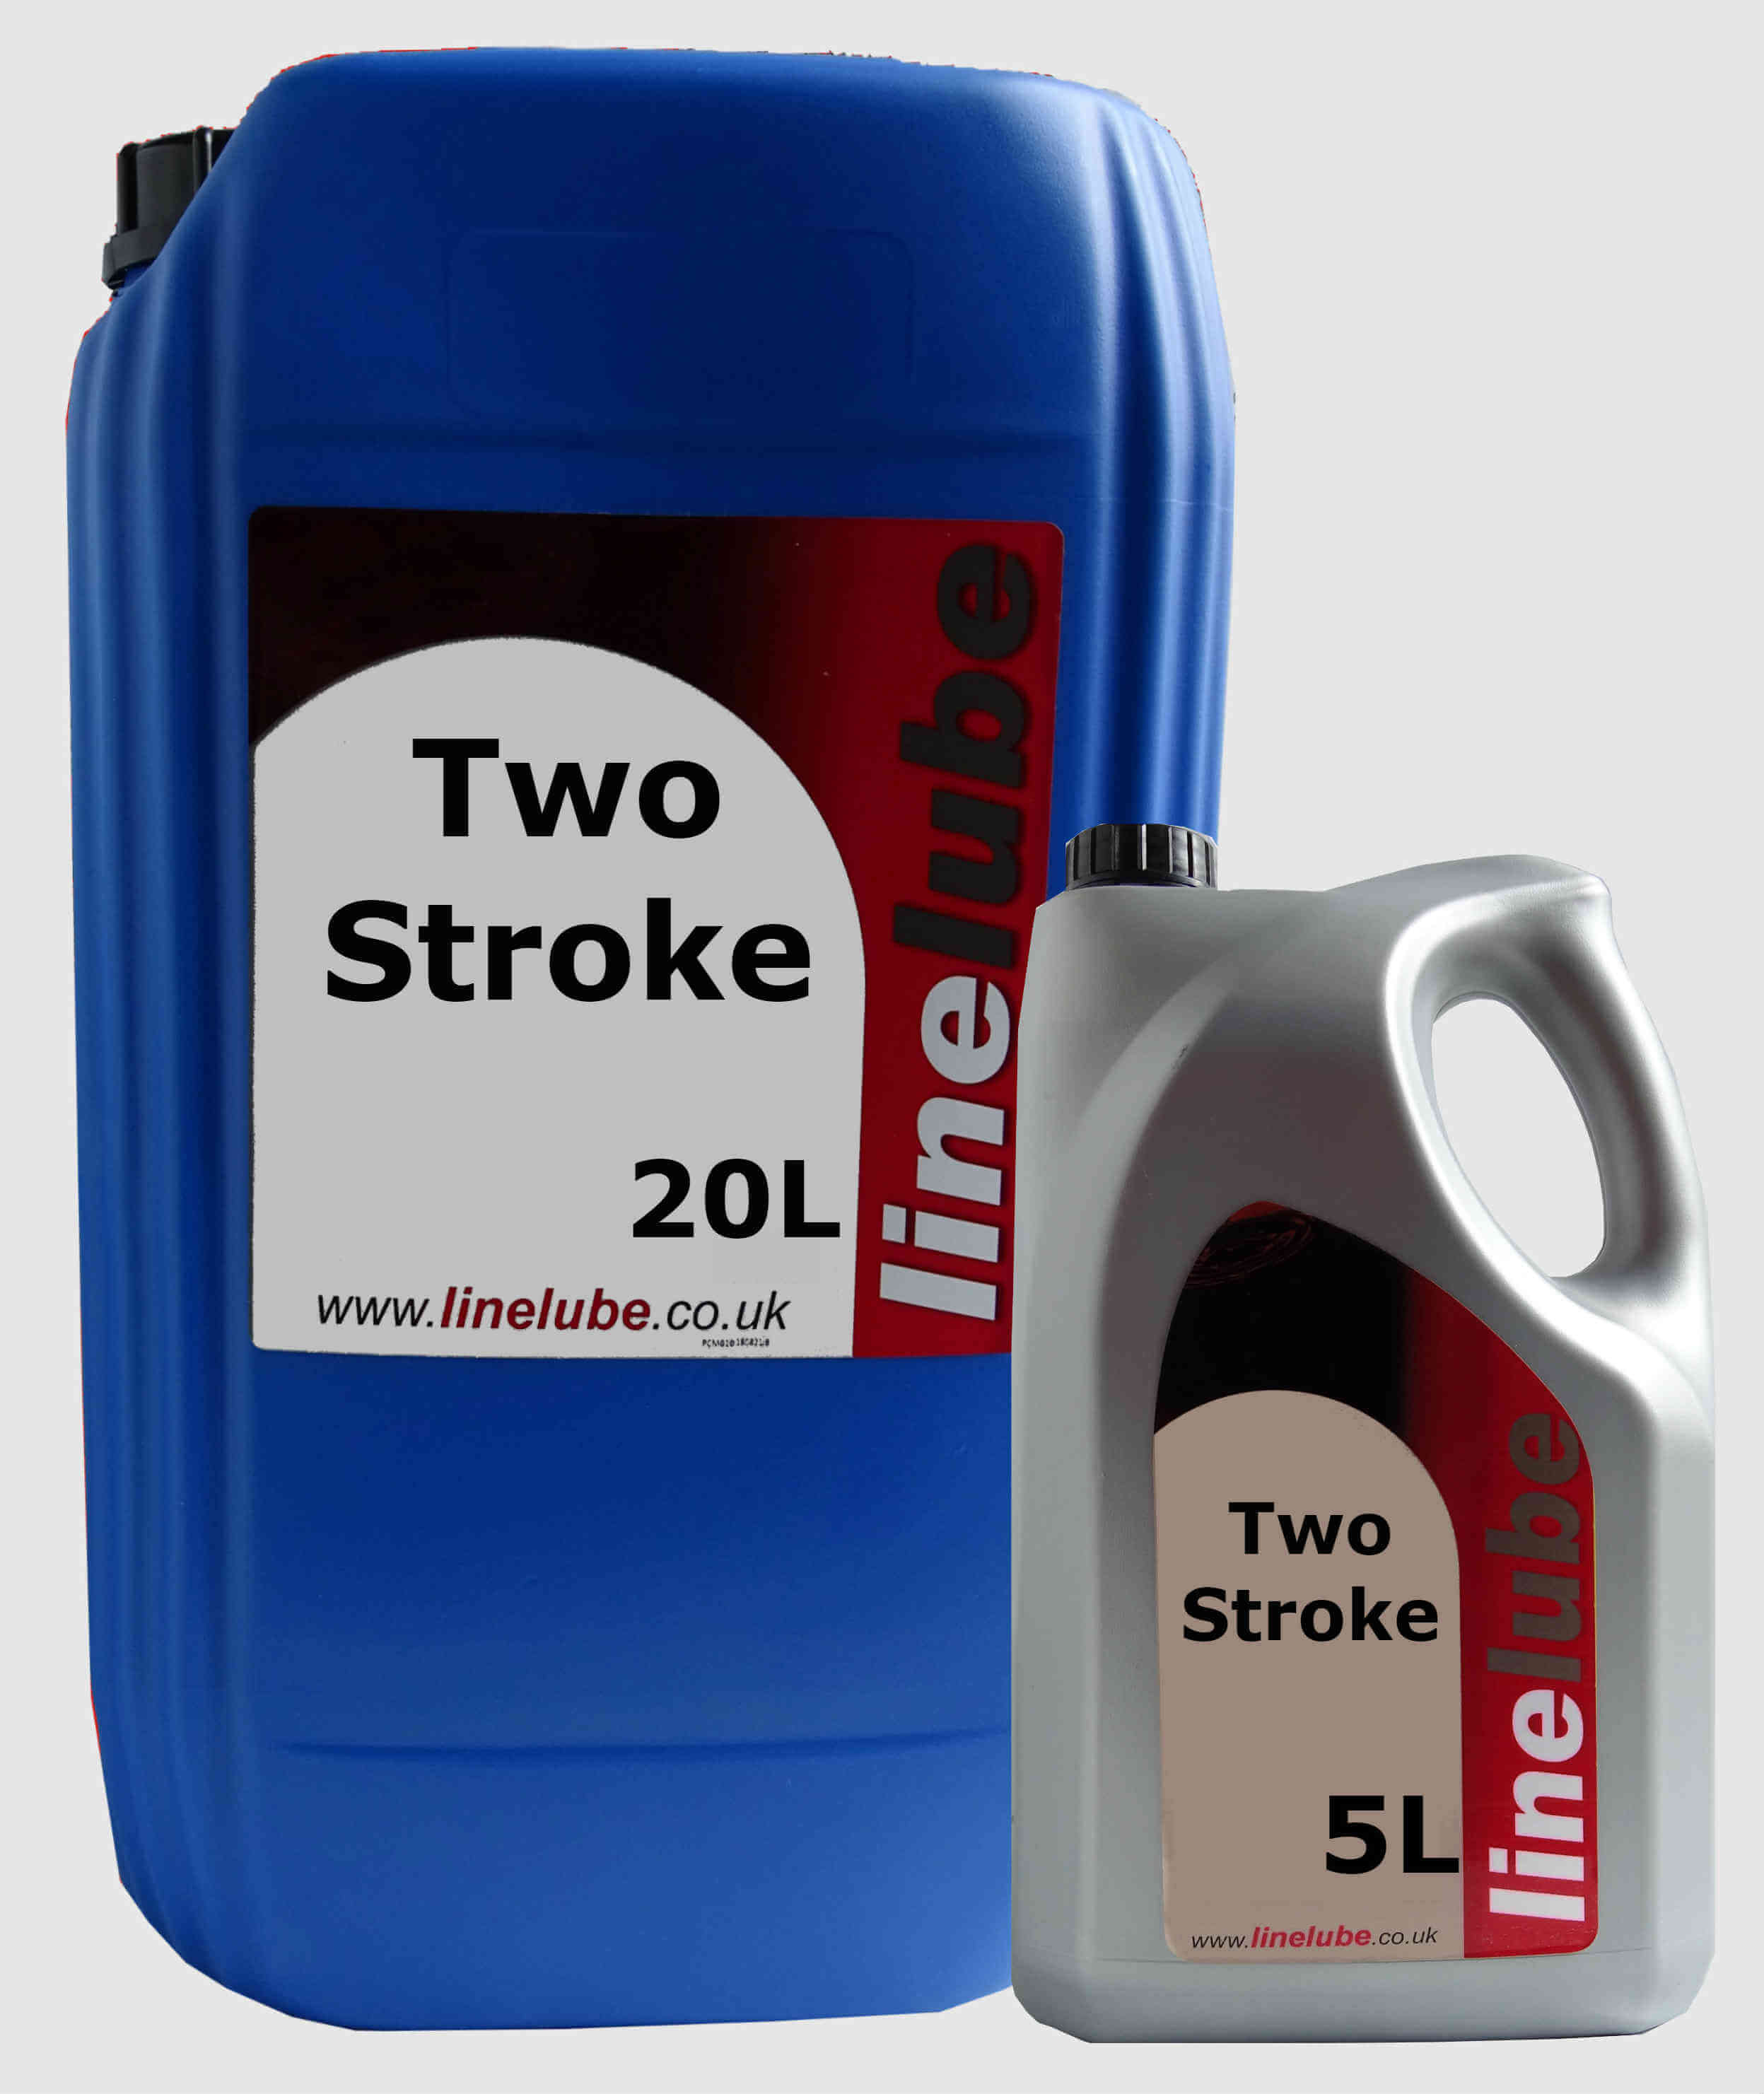 Linelube Two Stroke